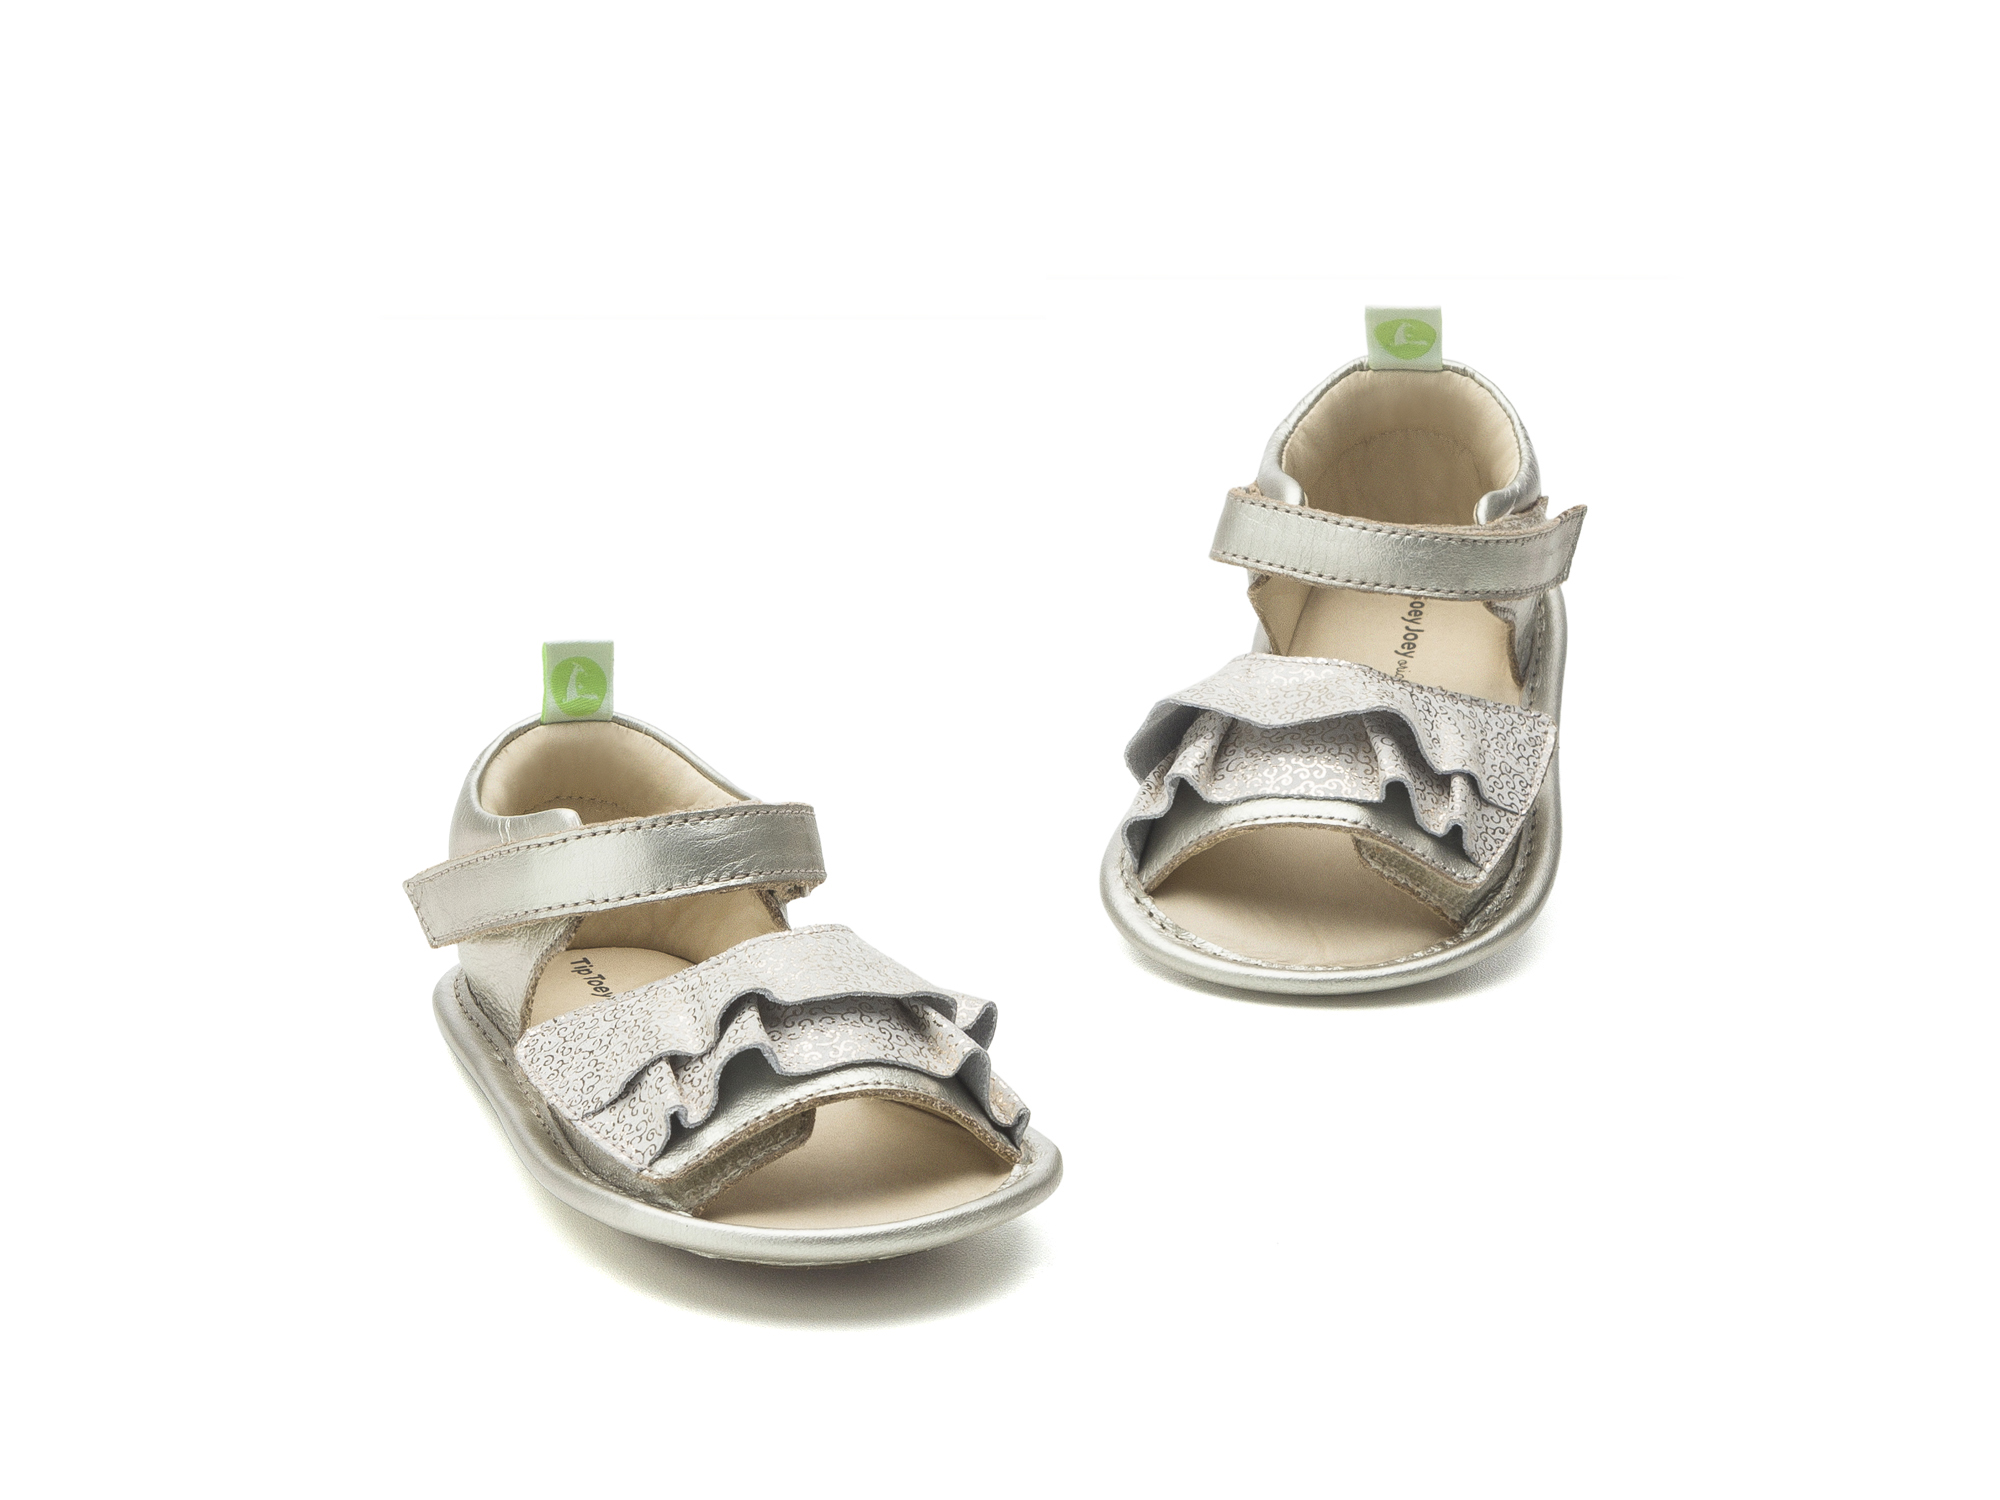 Sandal Windy Whitegold/ Golden Lace Baby for ages 0 to 2 years - 2